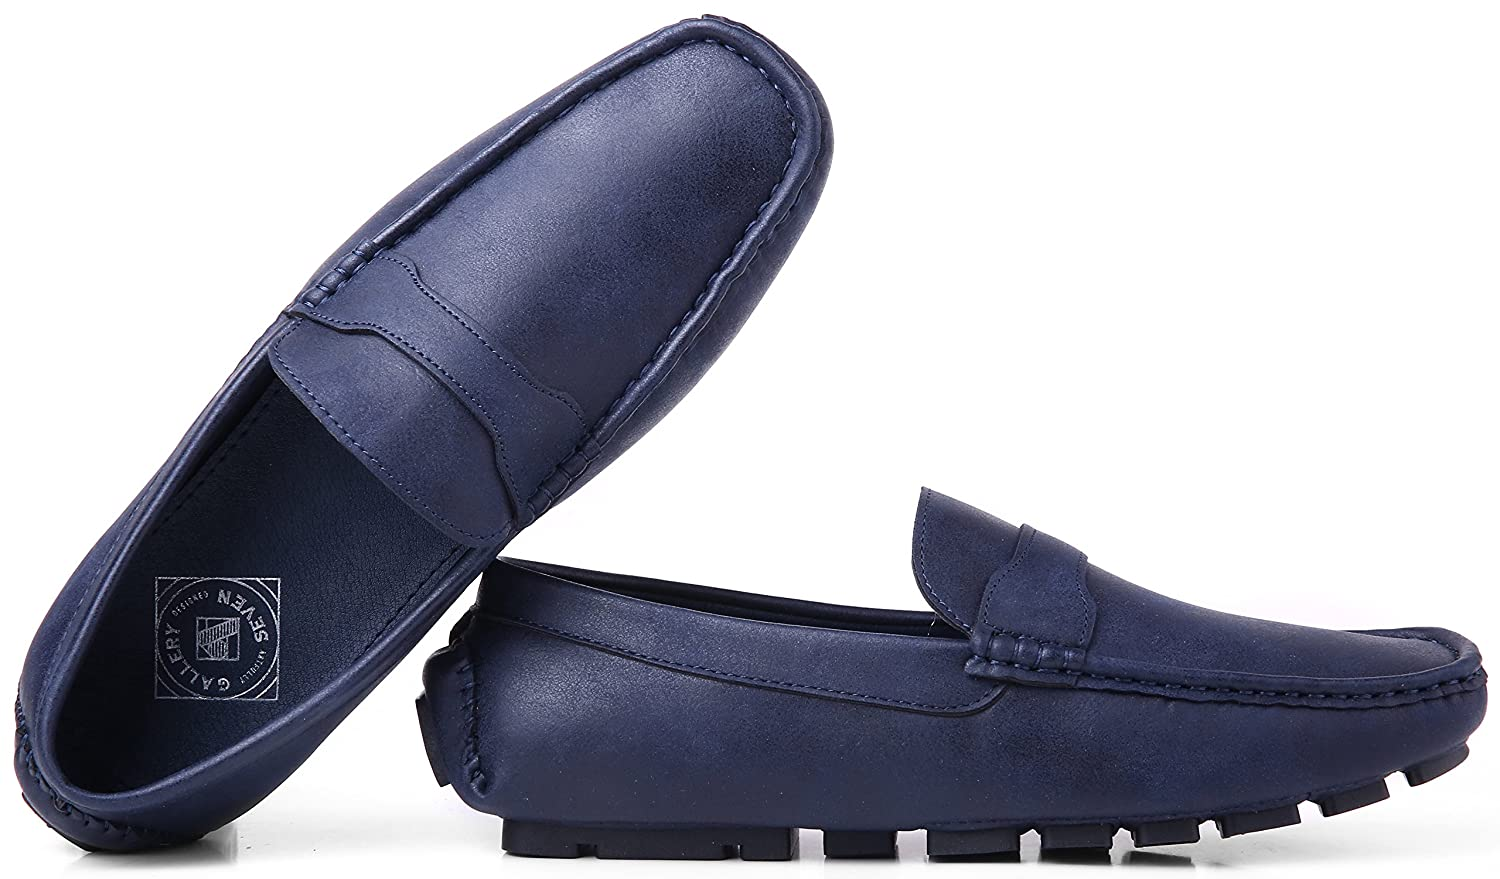 Gallery Seven Driving Shoes Men - Casual Moccasin Loafers